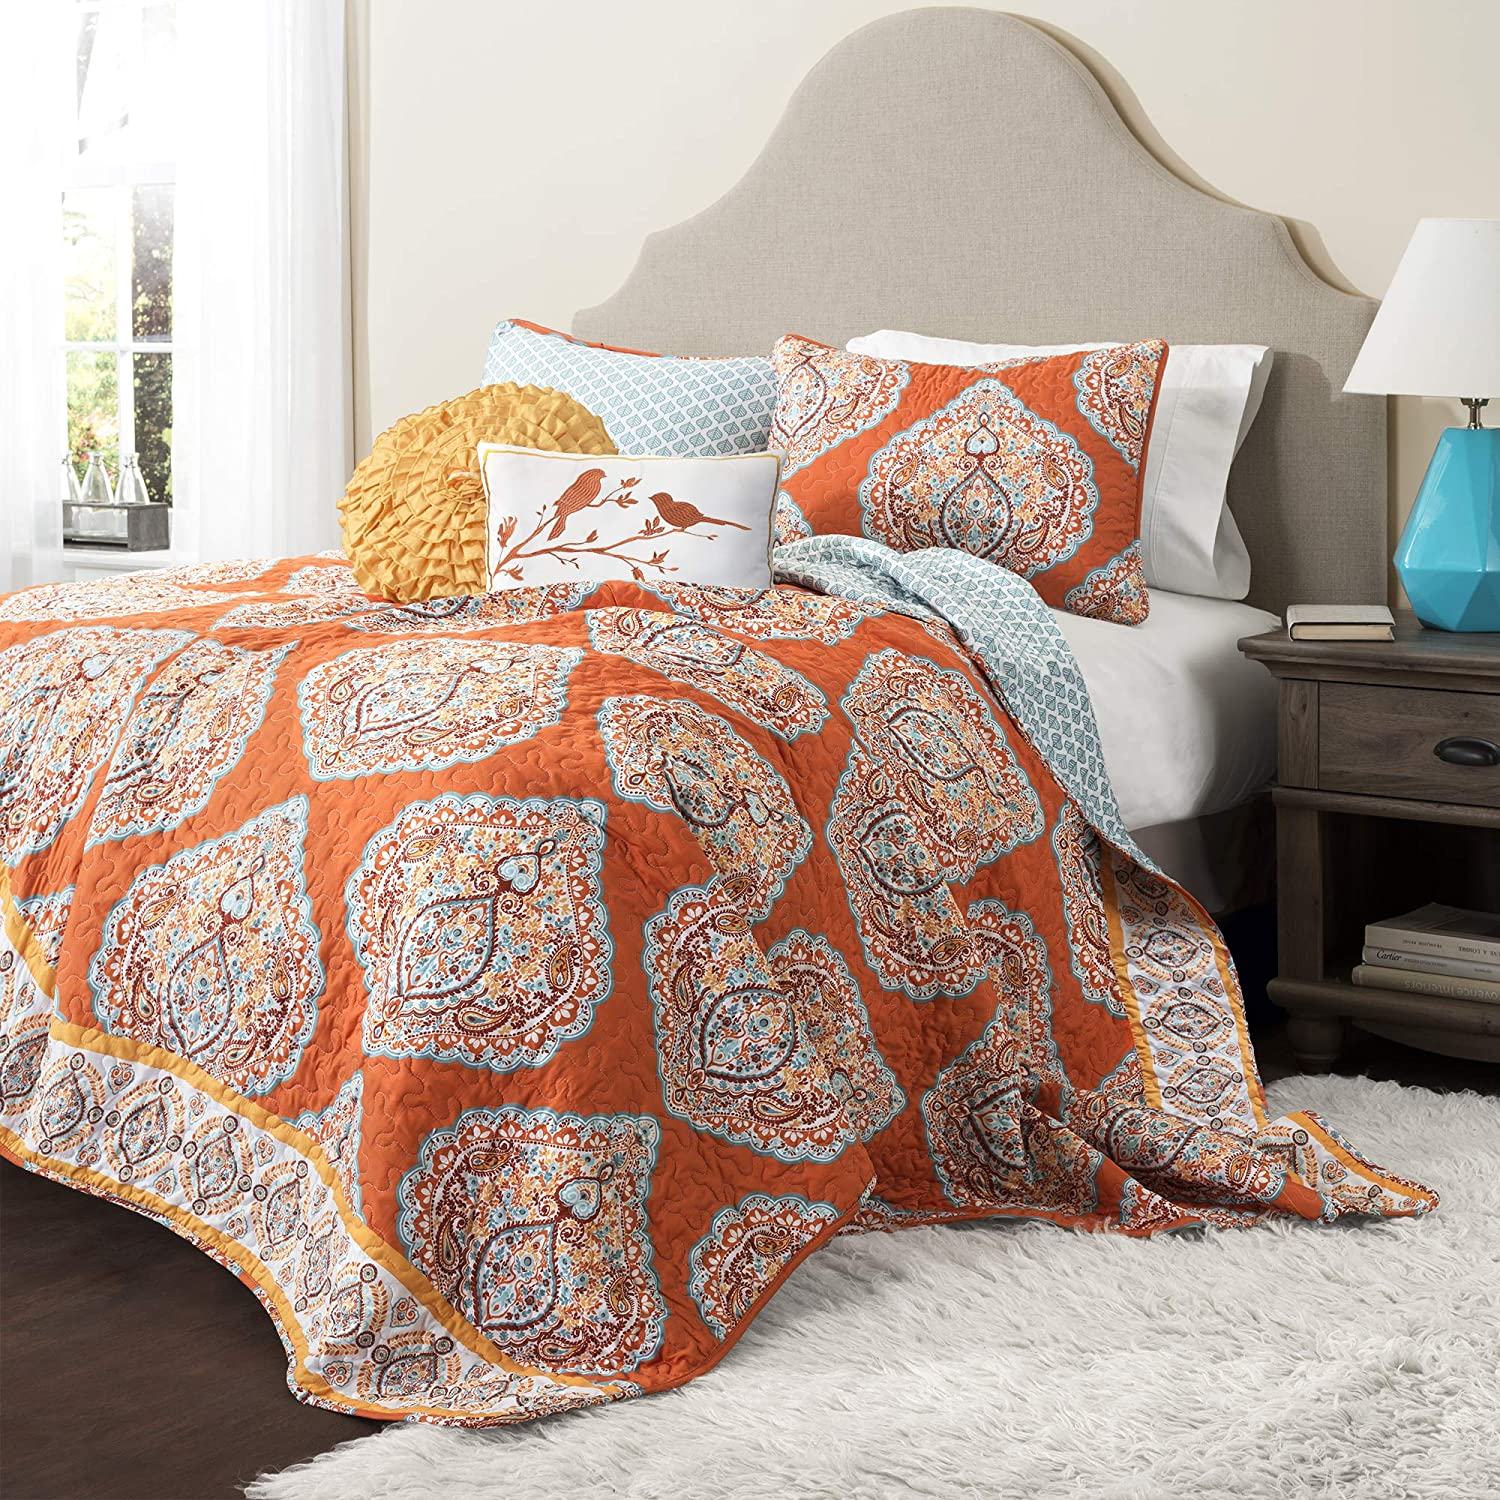 Lush Decor Harley Quilt Set Damask Pattern Reversible 5 Piece Bedding Set - Full Queen - Tangerine